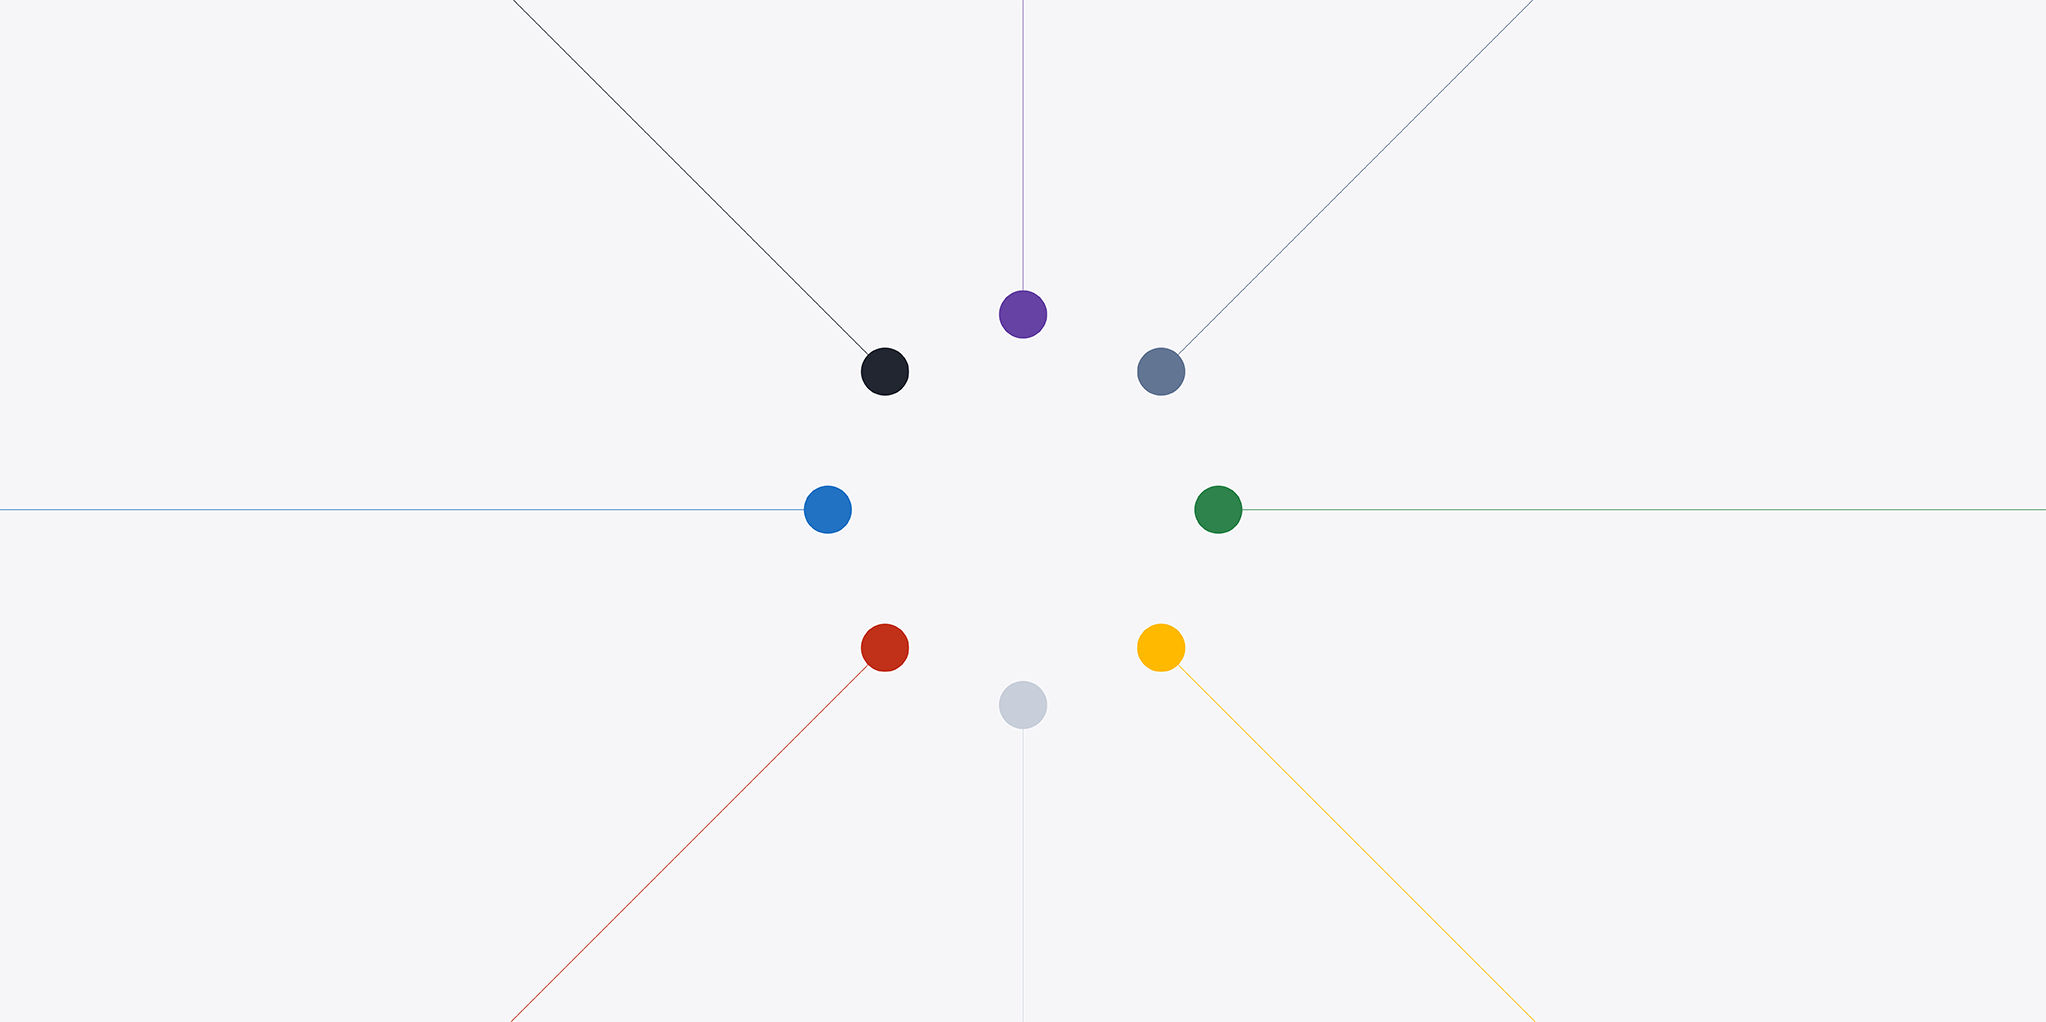 Colorful, solid circles meeting together in the middle to form a larger circle.